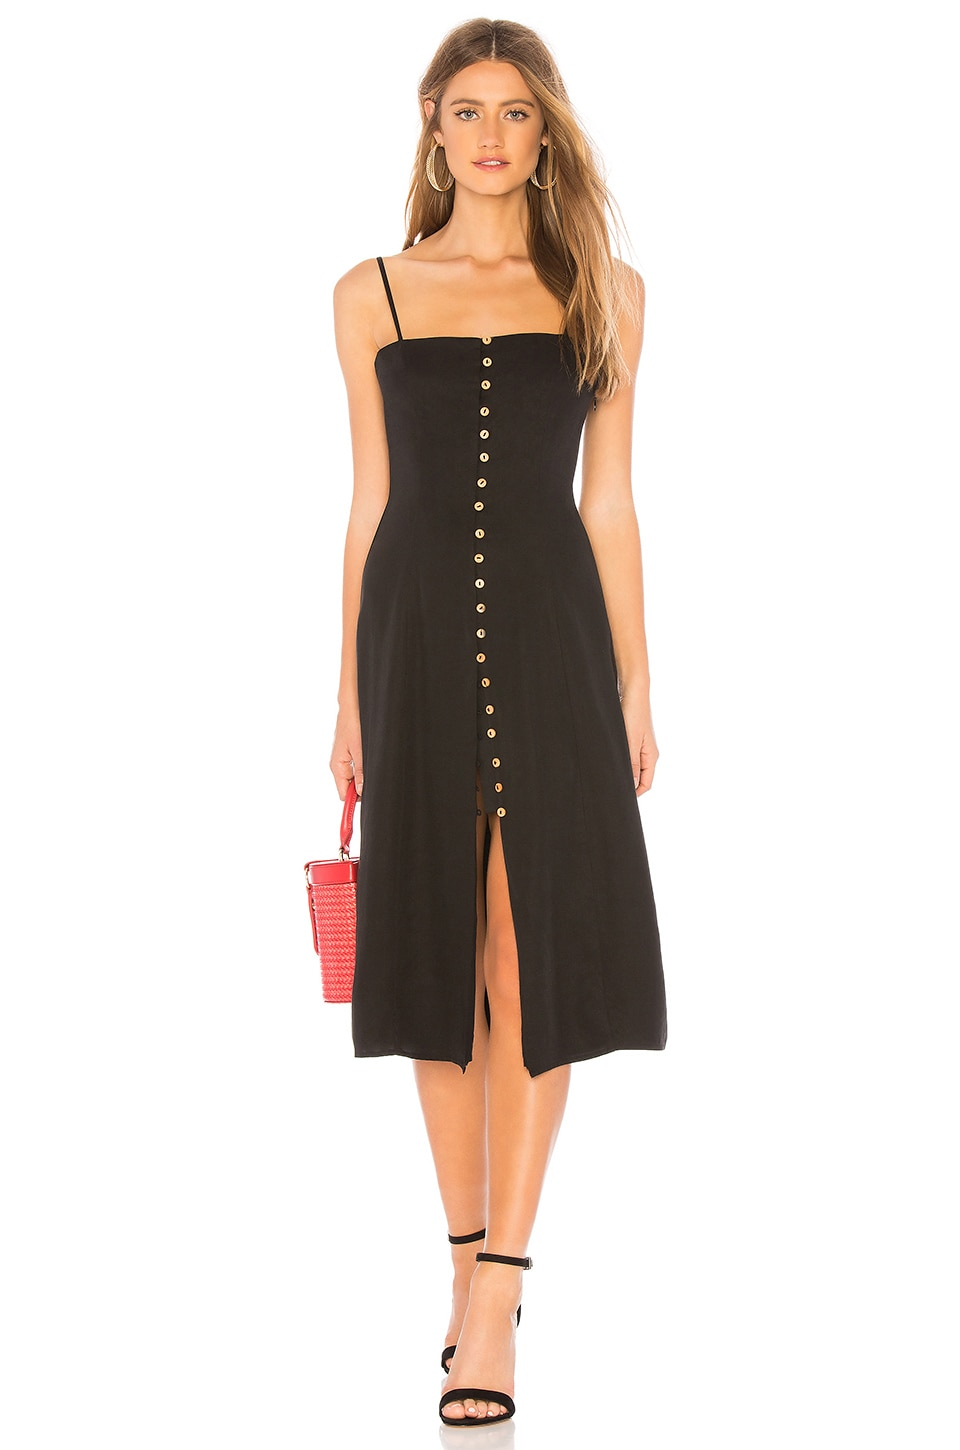 Privacy Please Dex Midi Dress in Black